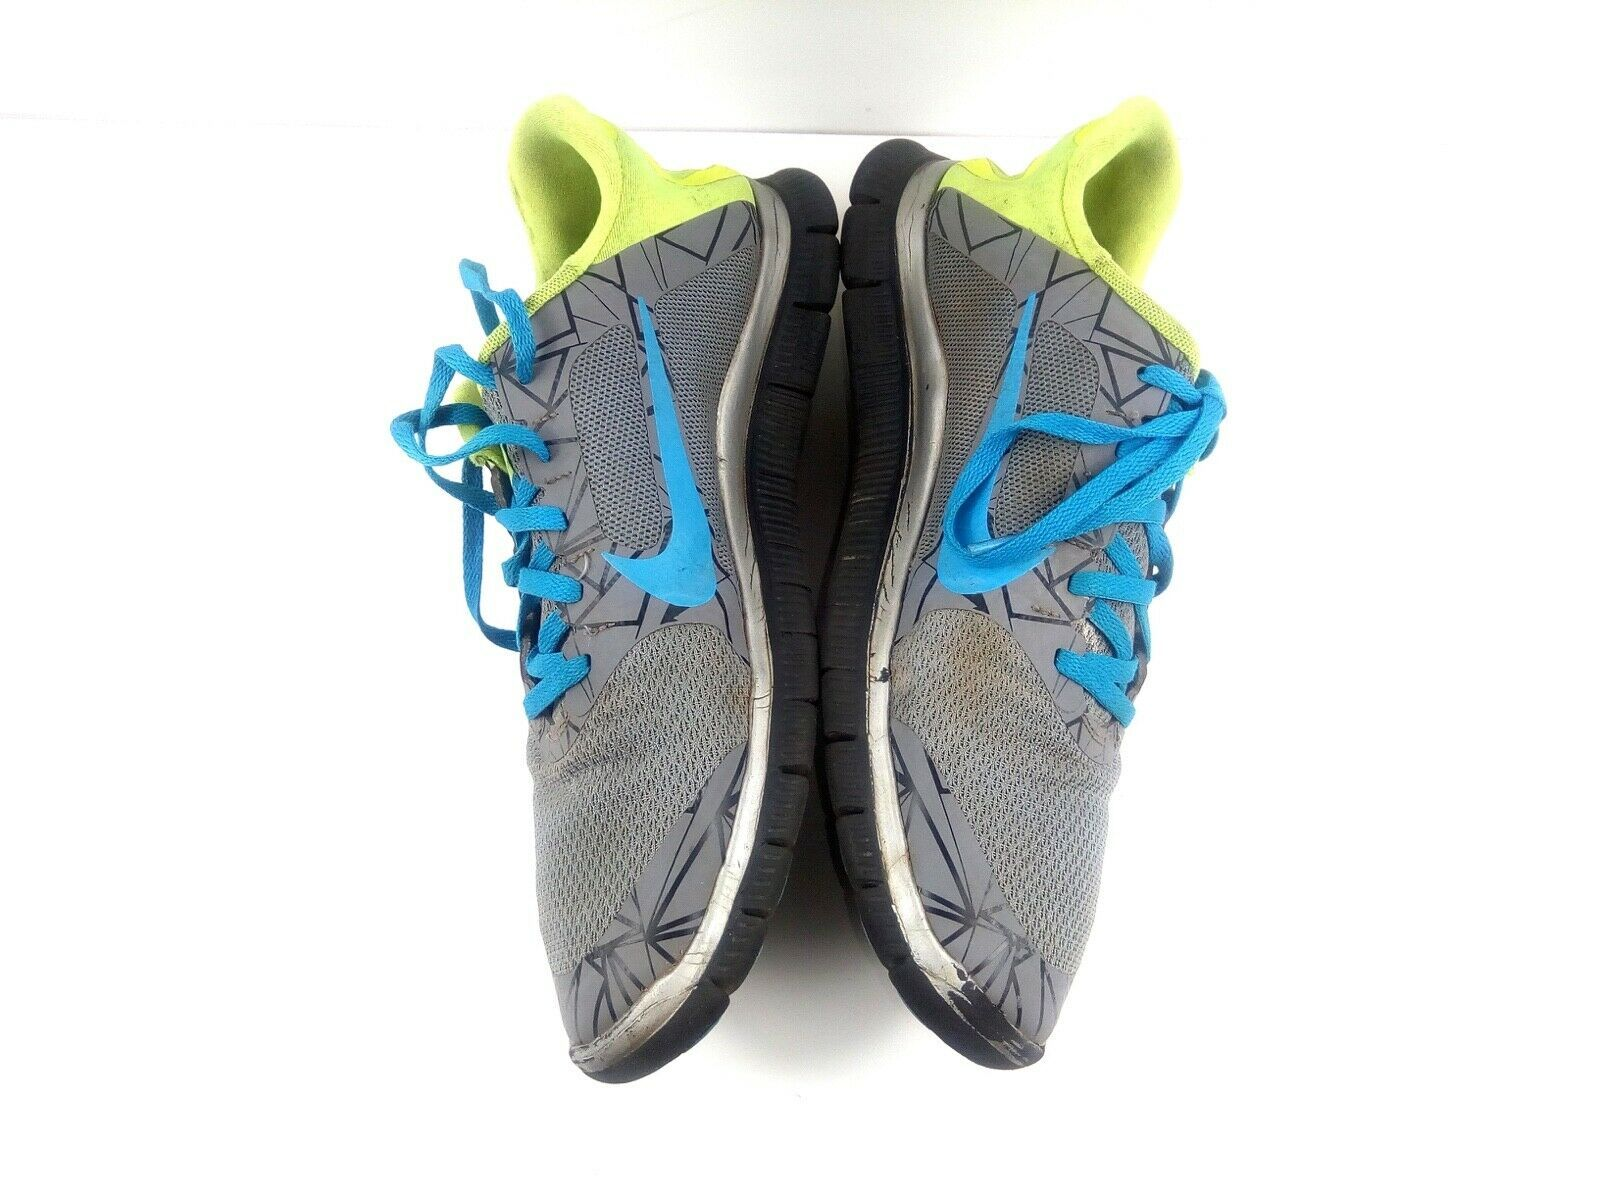 Nike Free 4.0 V3 Men's Sneakers Blue Grey Volt Running Training Shoes Size 10